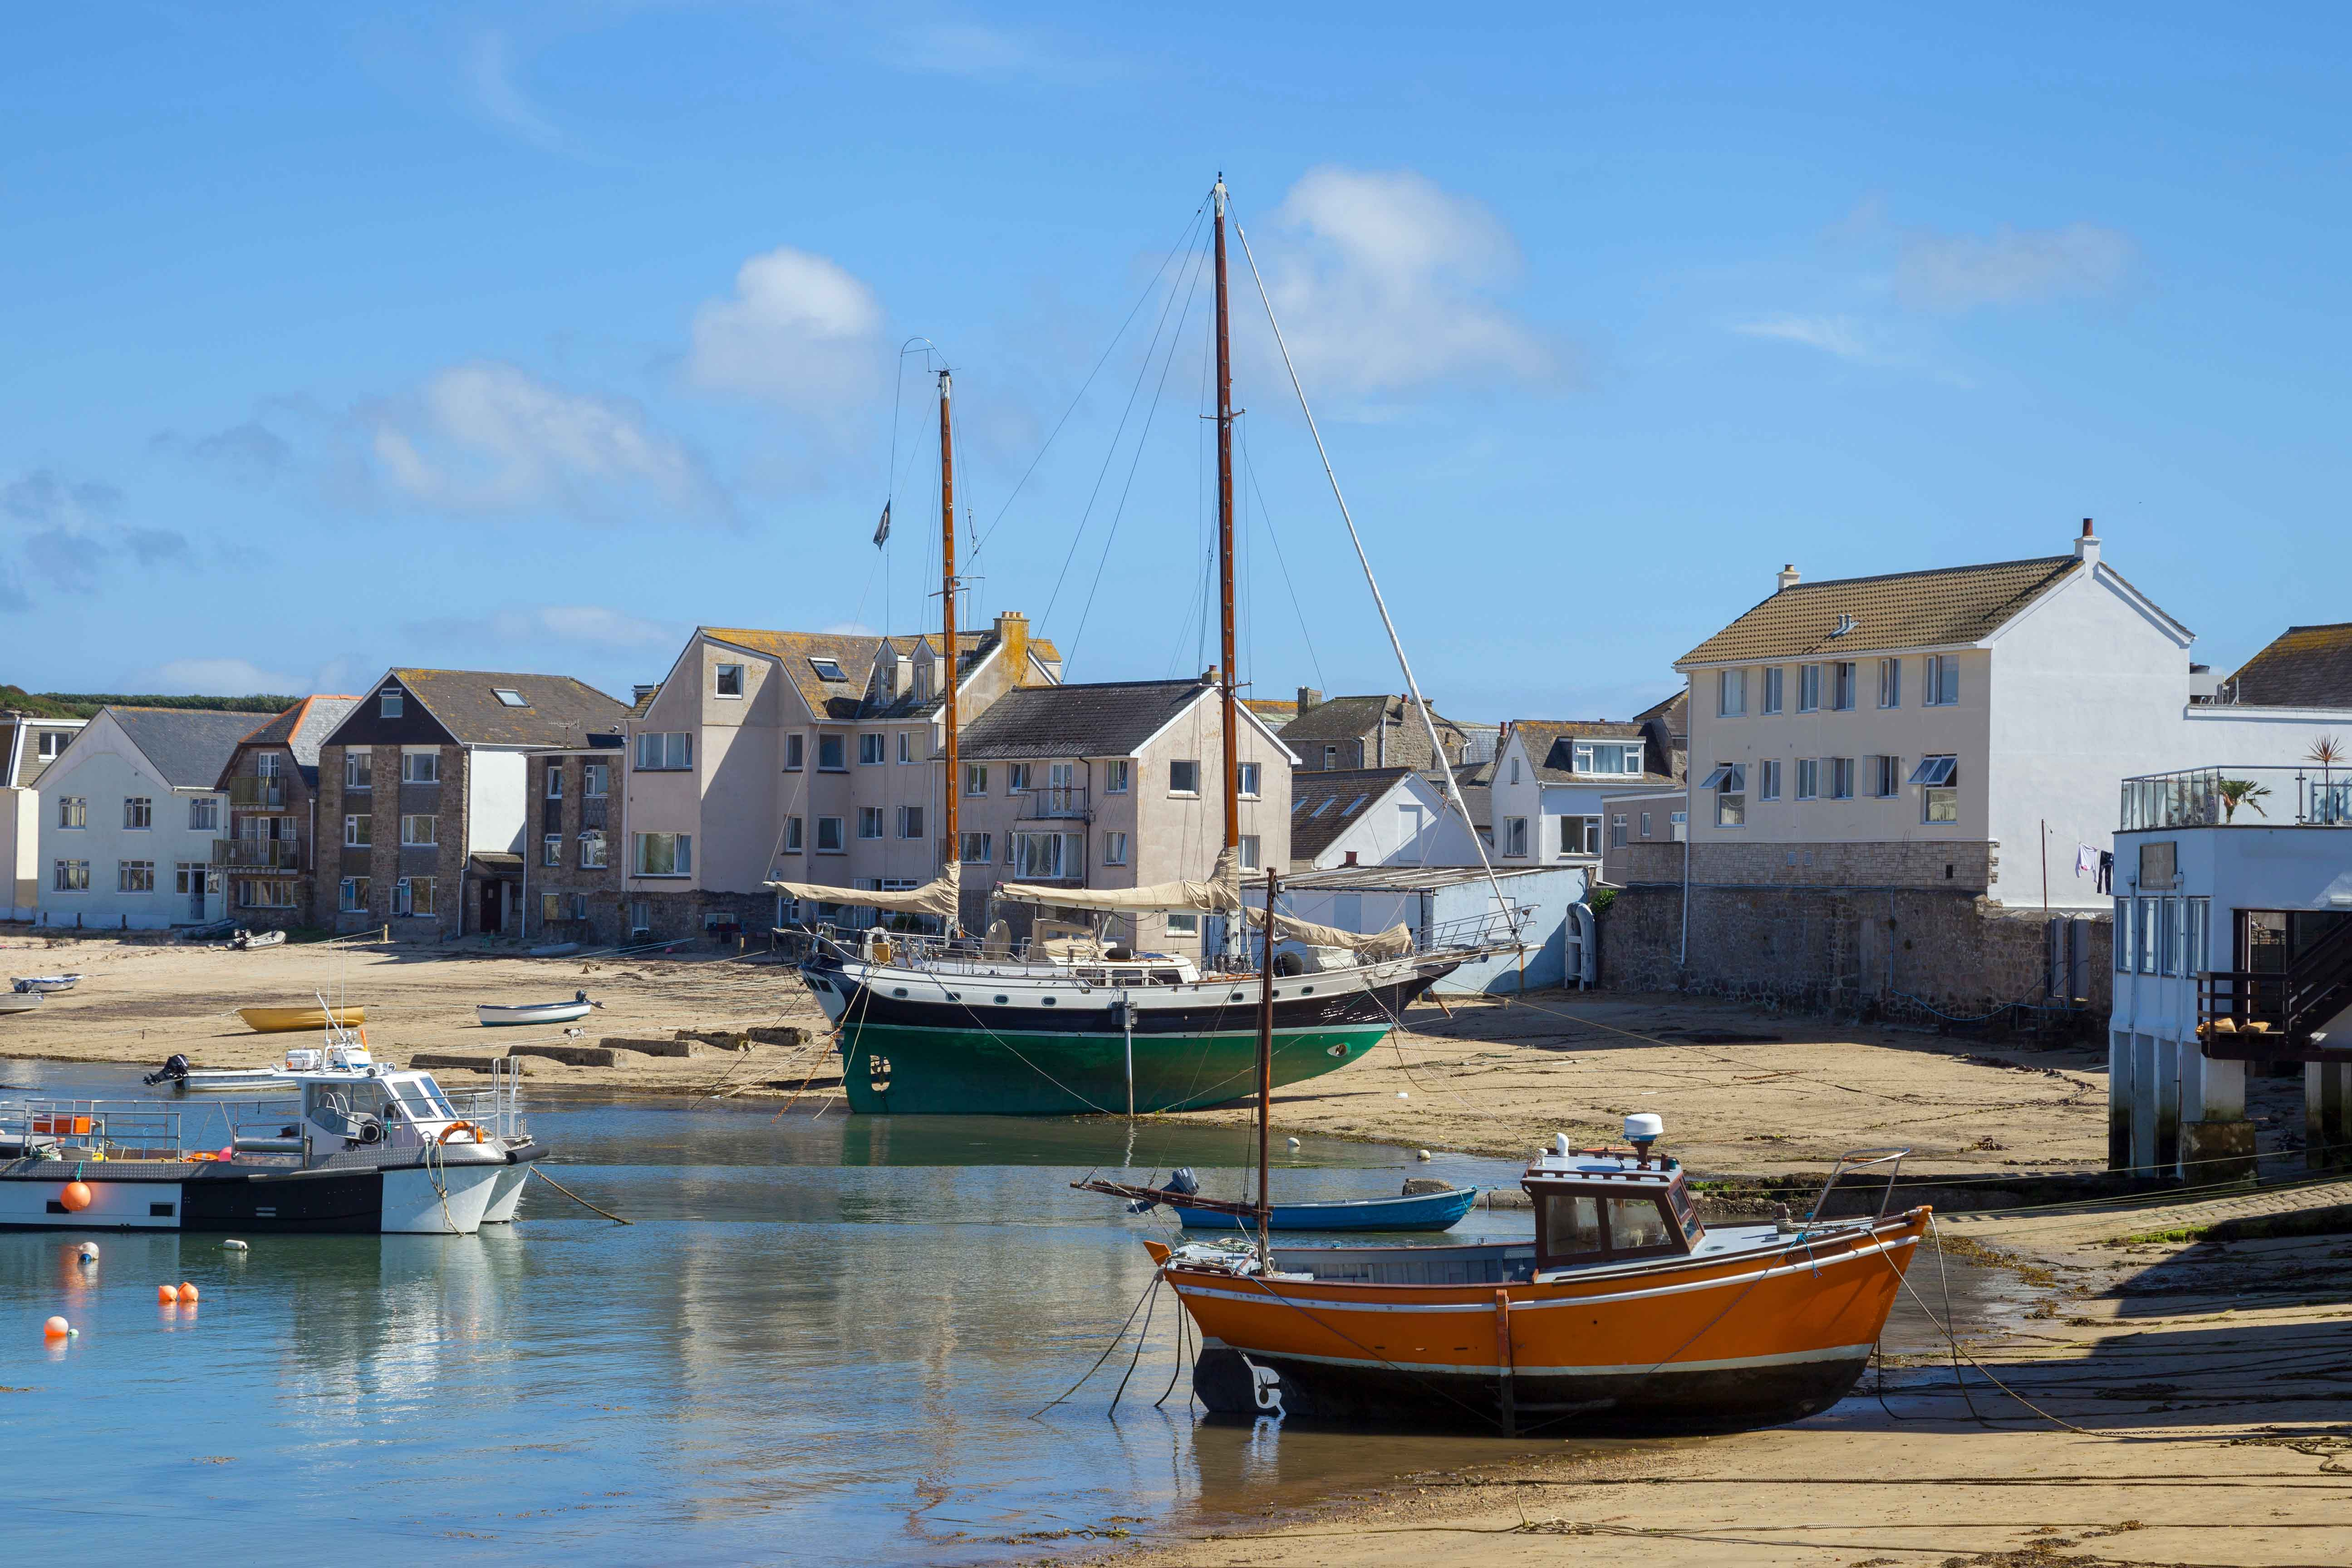 Canva---St-Mary's-Harbour,-St-Mary's,-Isles-of-Scilly